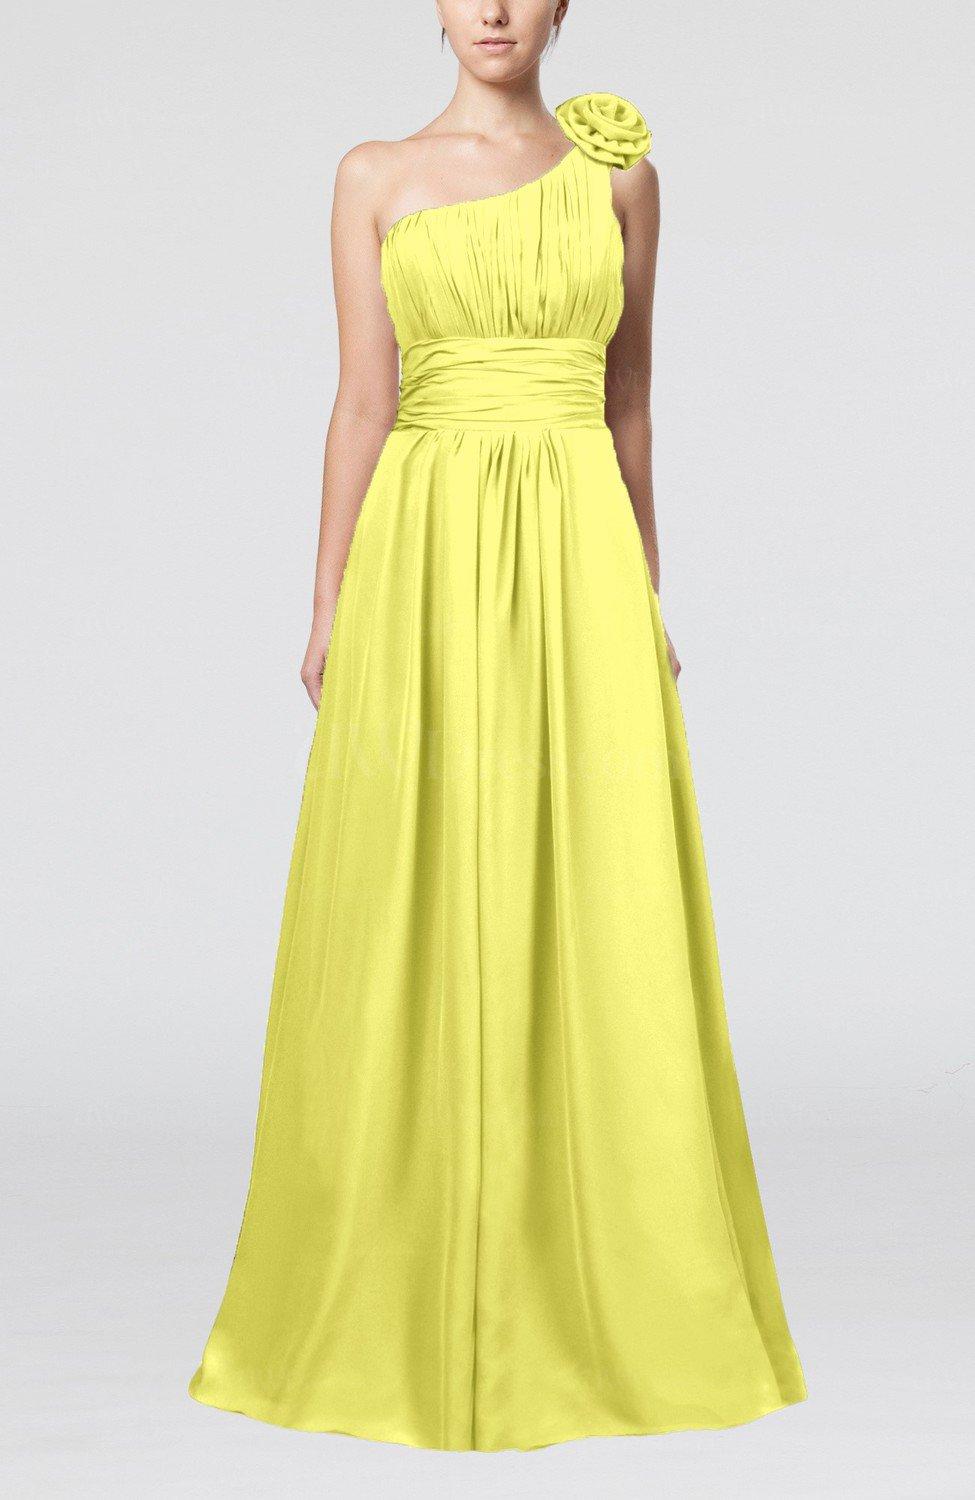 Pale yellow bridesmaid dresses offer just the right tint of yellow-a light, citron shade that conveys happiness and confidence. After all, it is a wedding! Spread the cheer further with light color choices reflected in your bridesmaids dresses/5(87).